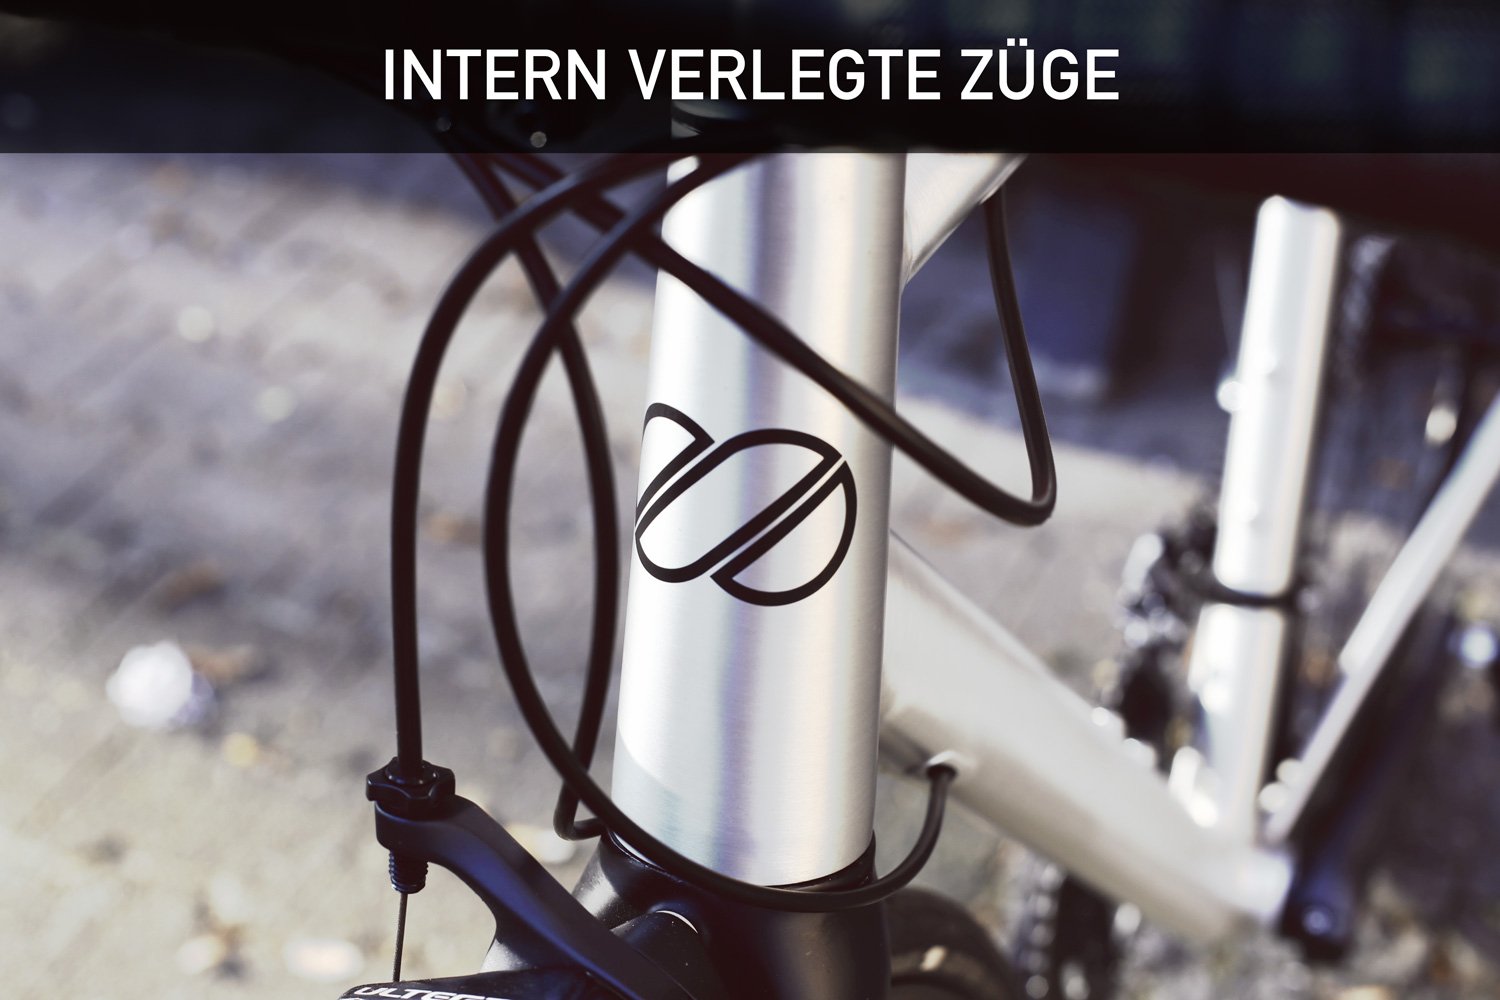 8bar-kronprinz-v2-road-bike-blog-intcablerout-v4-de